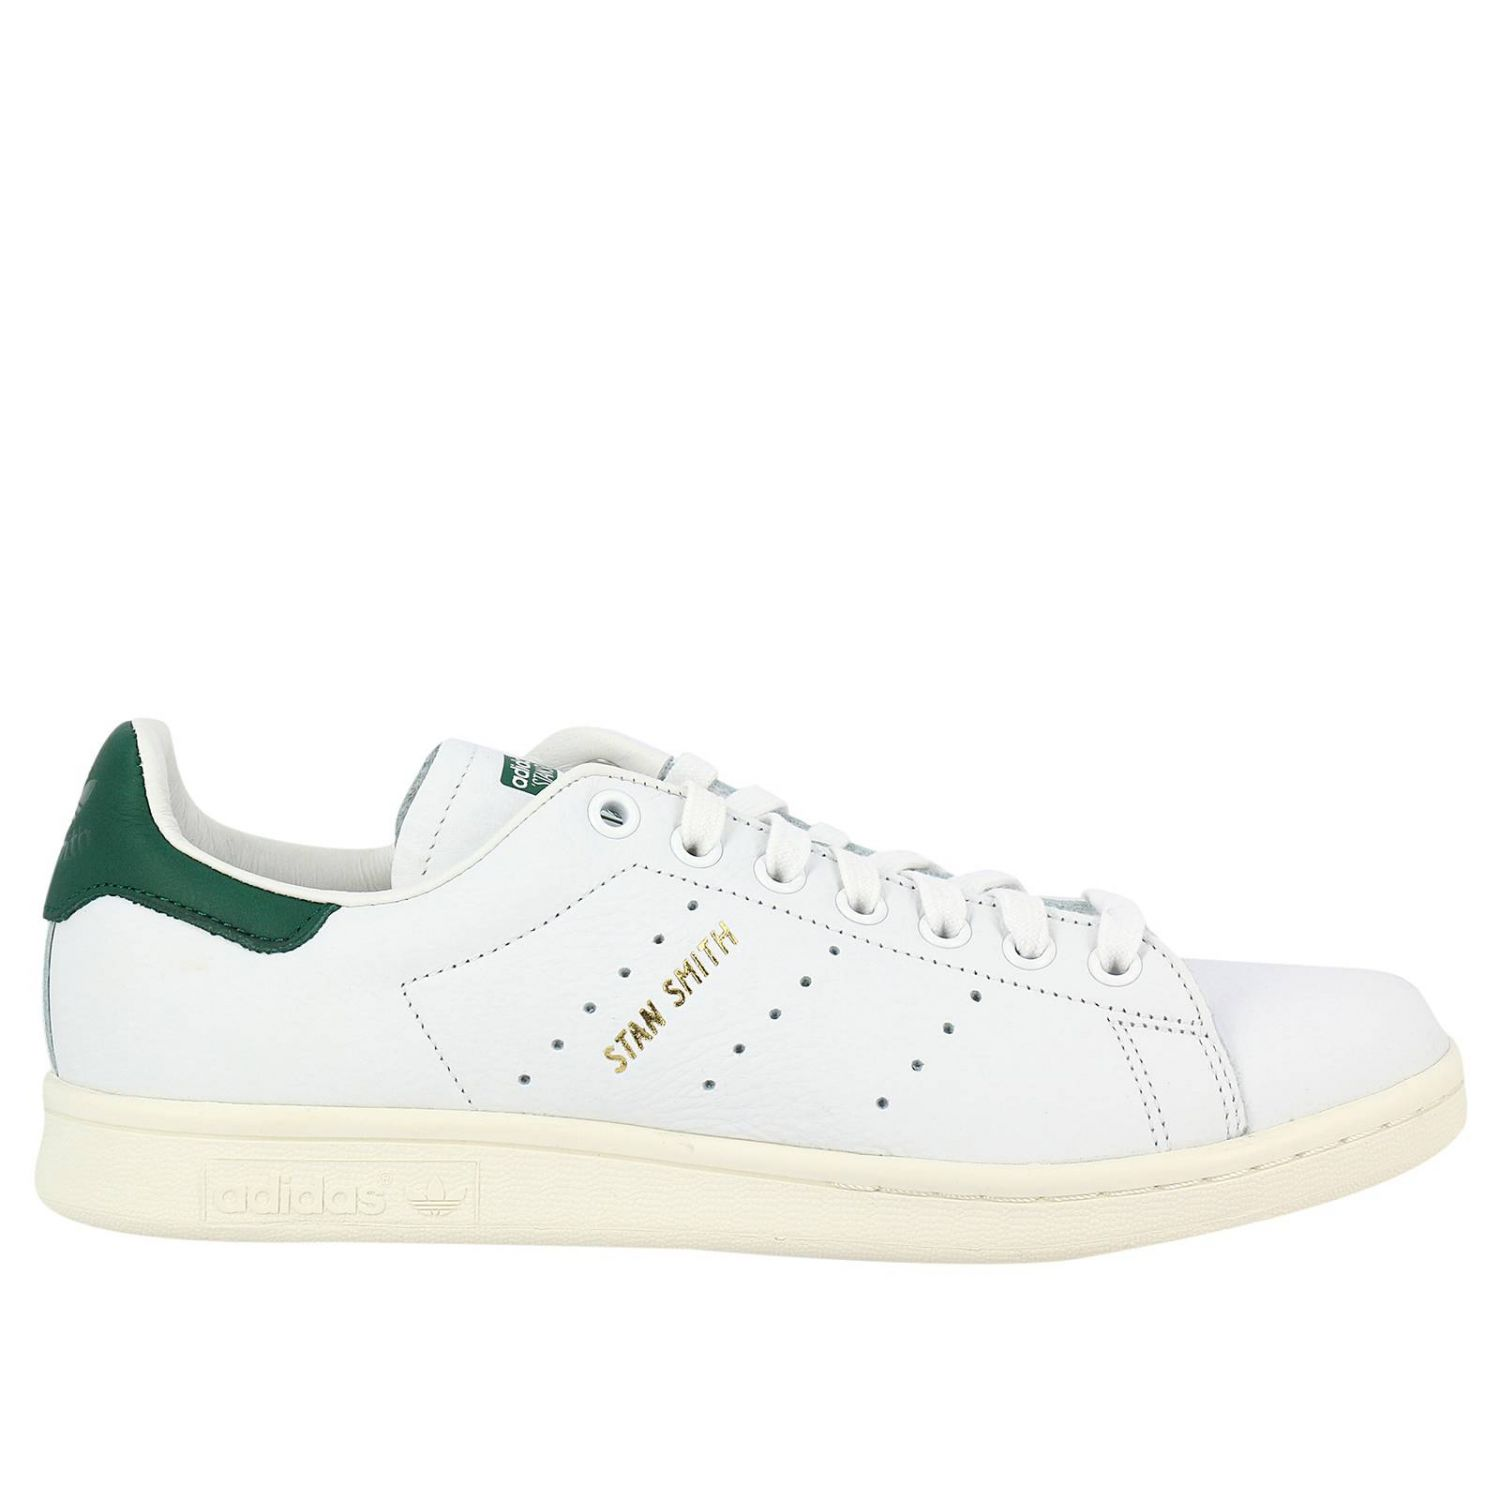 Sneakers Adidas Originals Stan Smith Men's Sneakers In Smooth Leather With Ortholite Sole 8311784